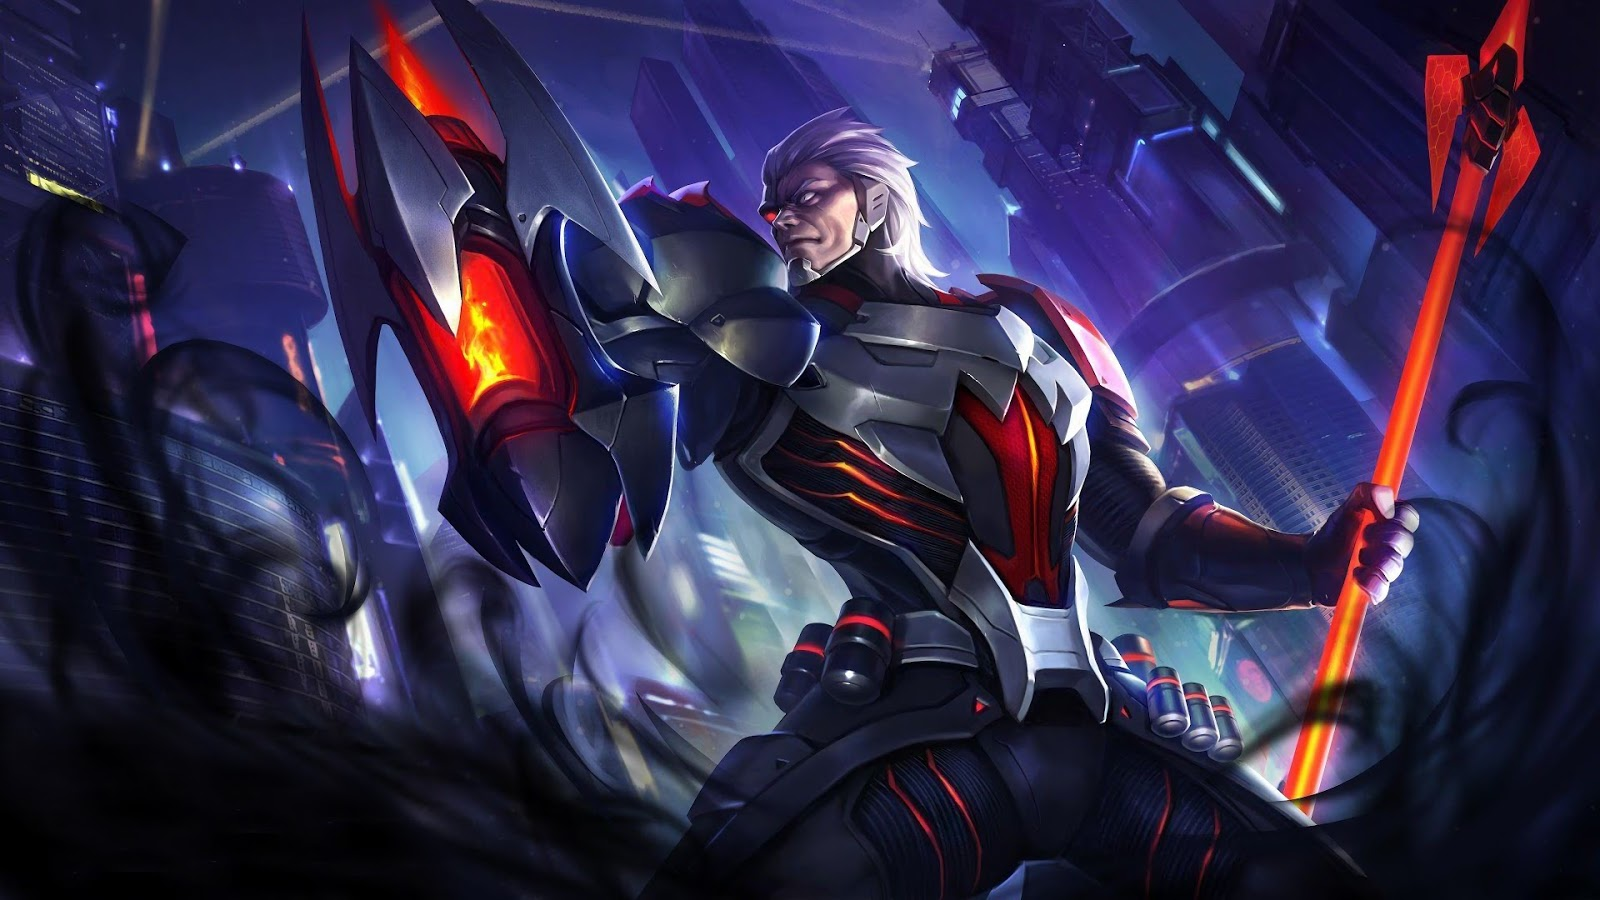 Wallpaper Moskov Snake Eye Commander Skin Mobile Legends Full HD for PC